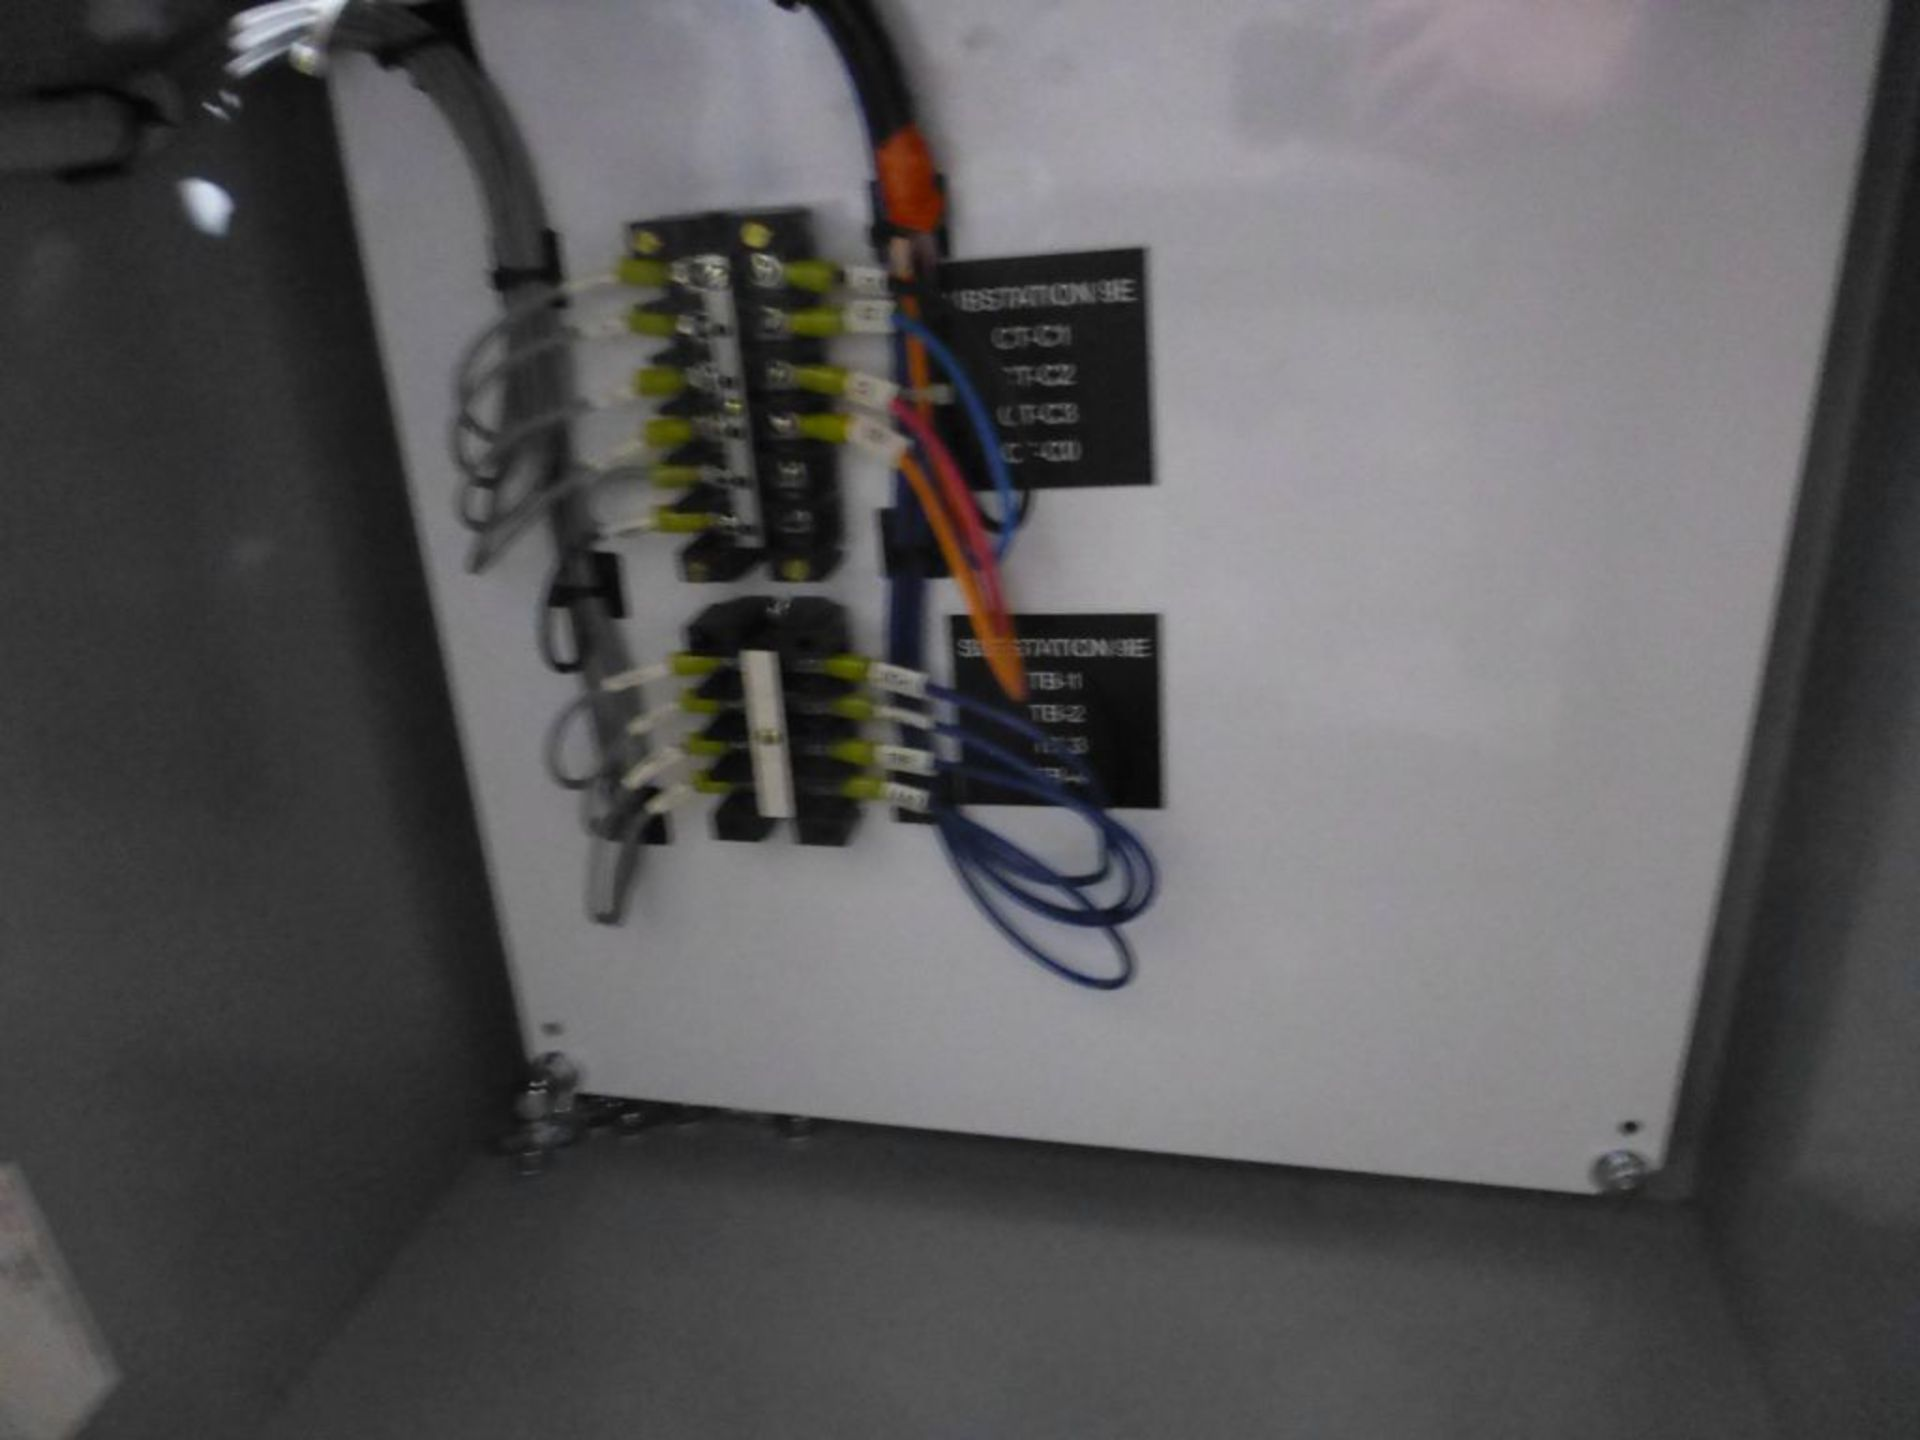 Substation Protective Relay Panel - Image 14 of 14